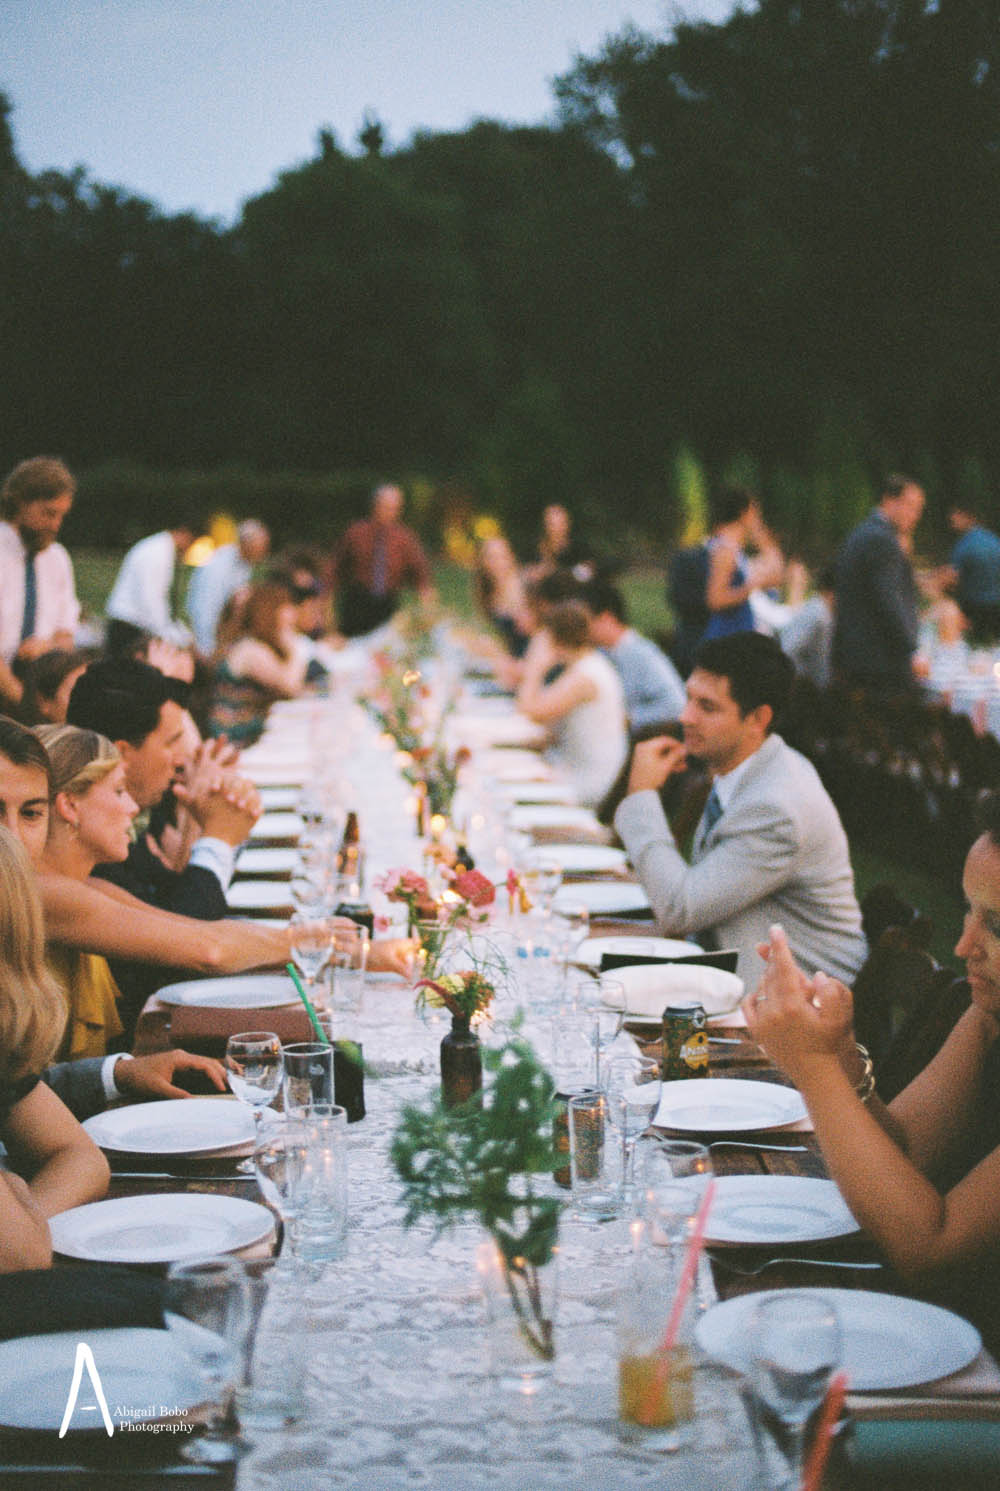 guests seated at long tables